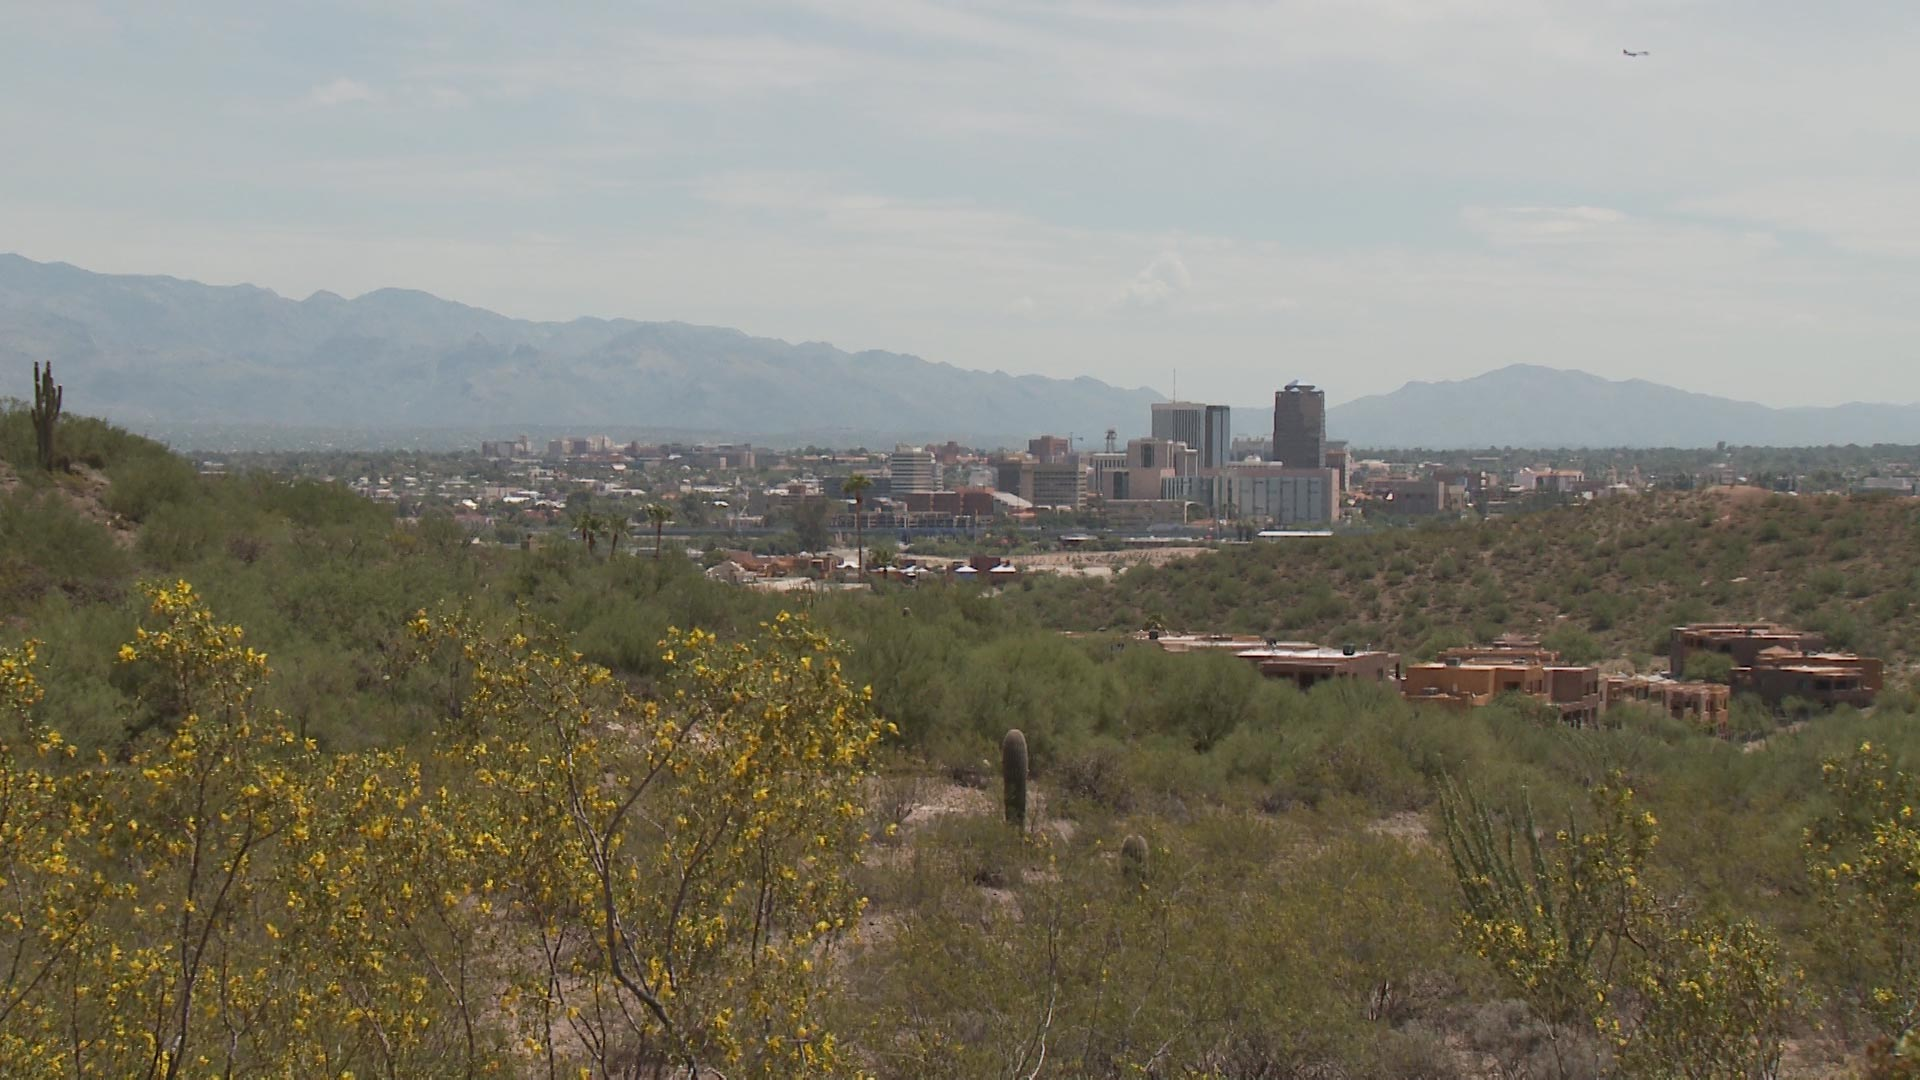 File image of Tucson.